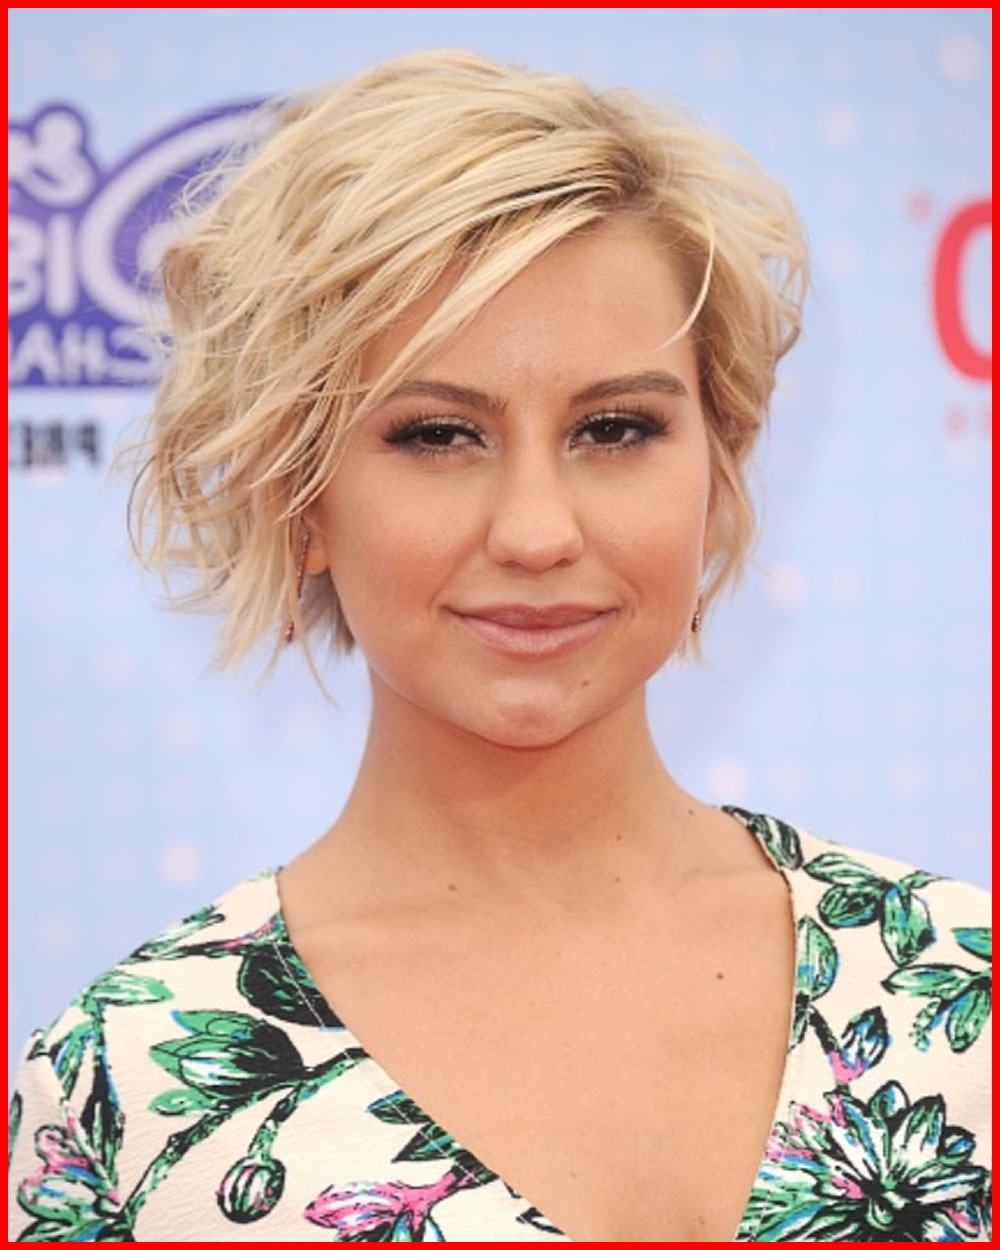 Stylish Short Hairstyles 89386 2018 Prom Hairstyles For Short Hair Inside Trendy Short Haircuts (View 18 of 25)